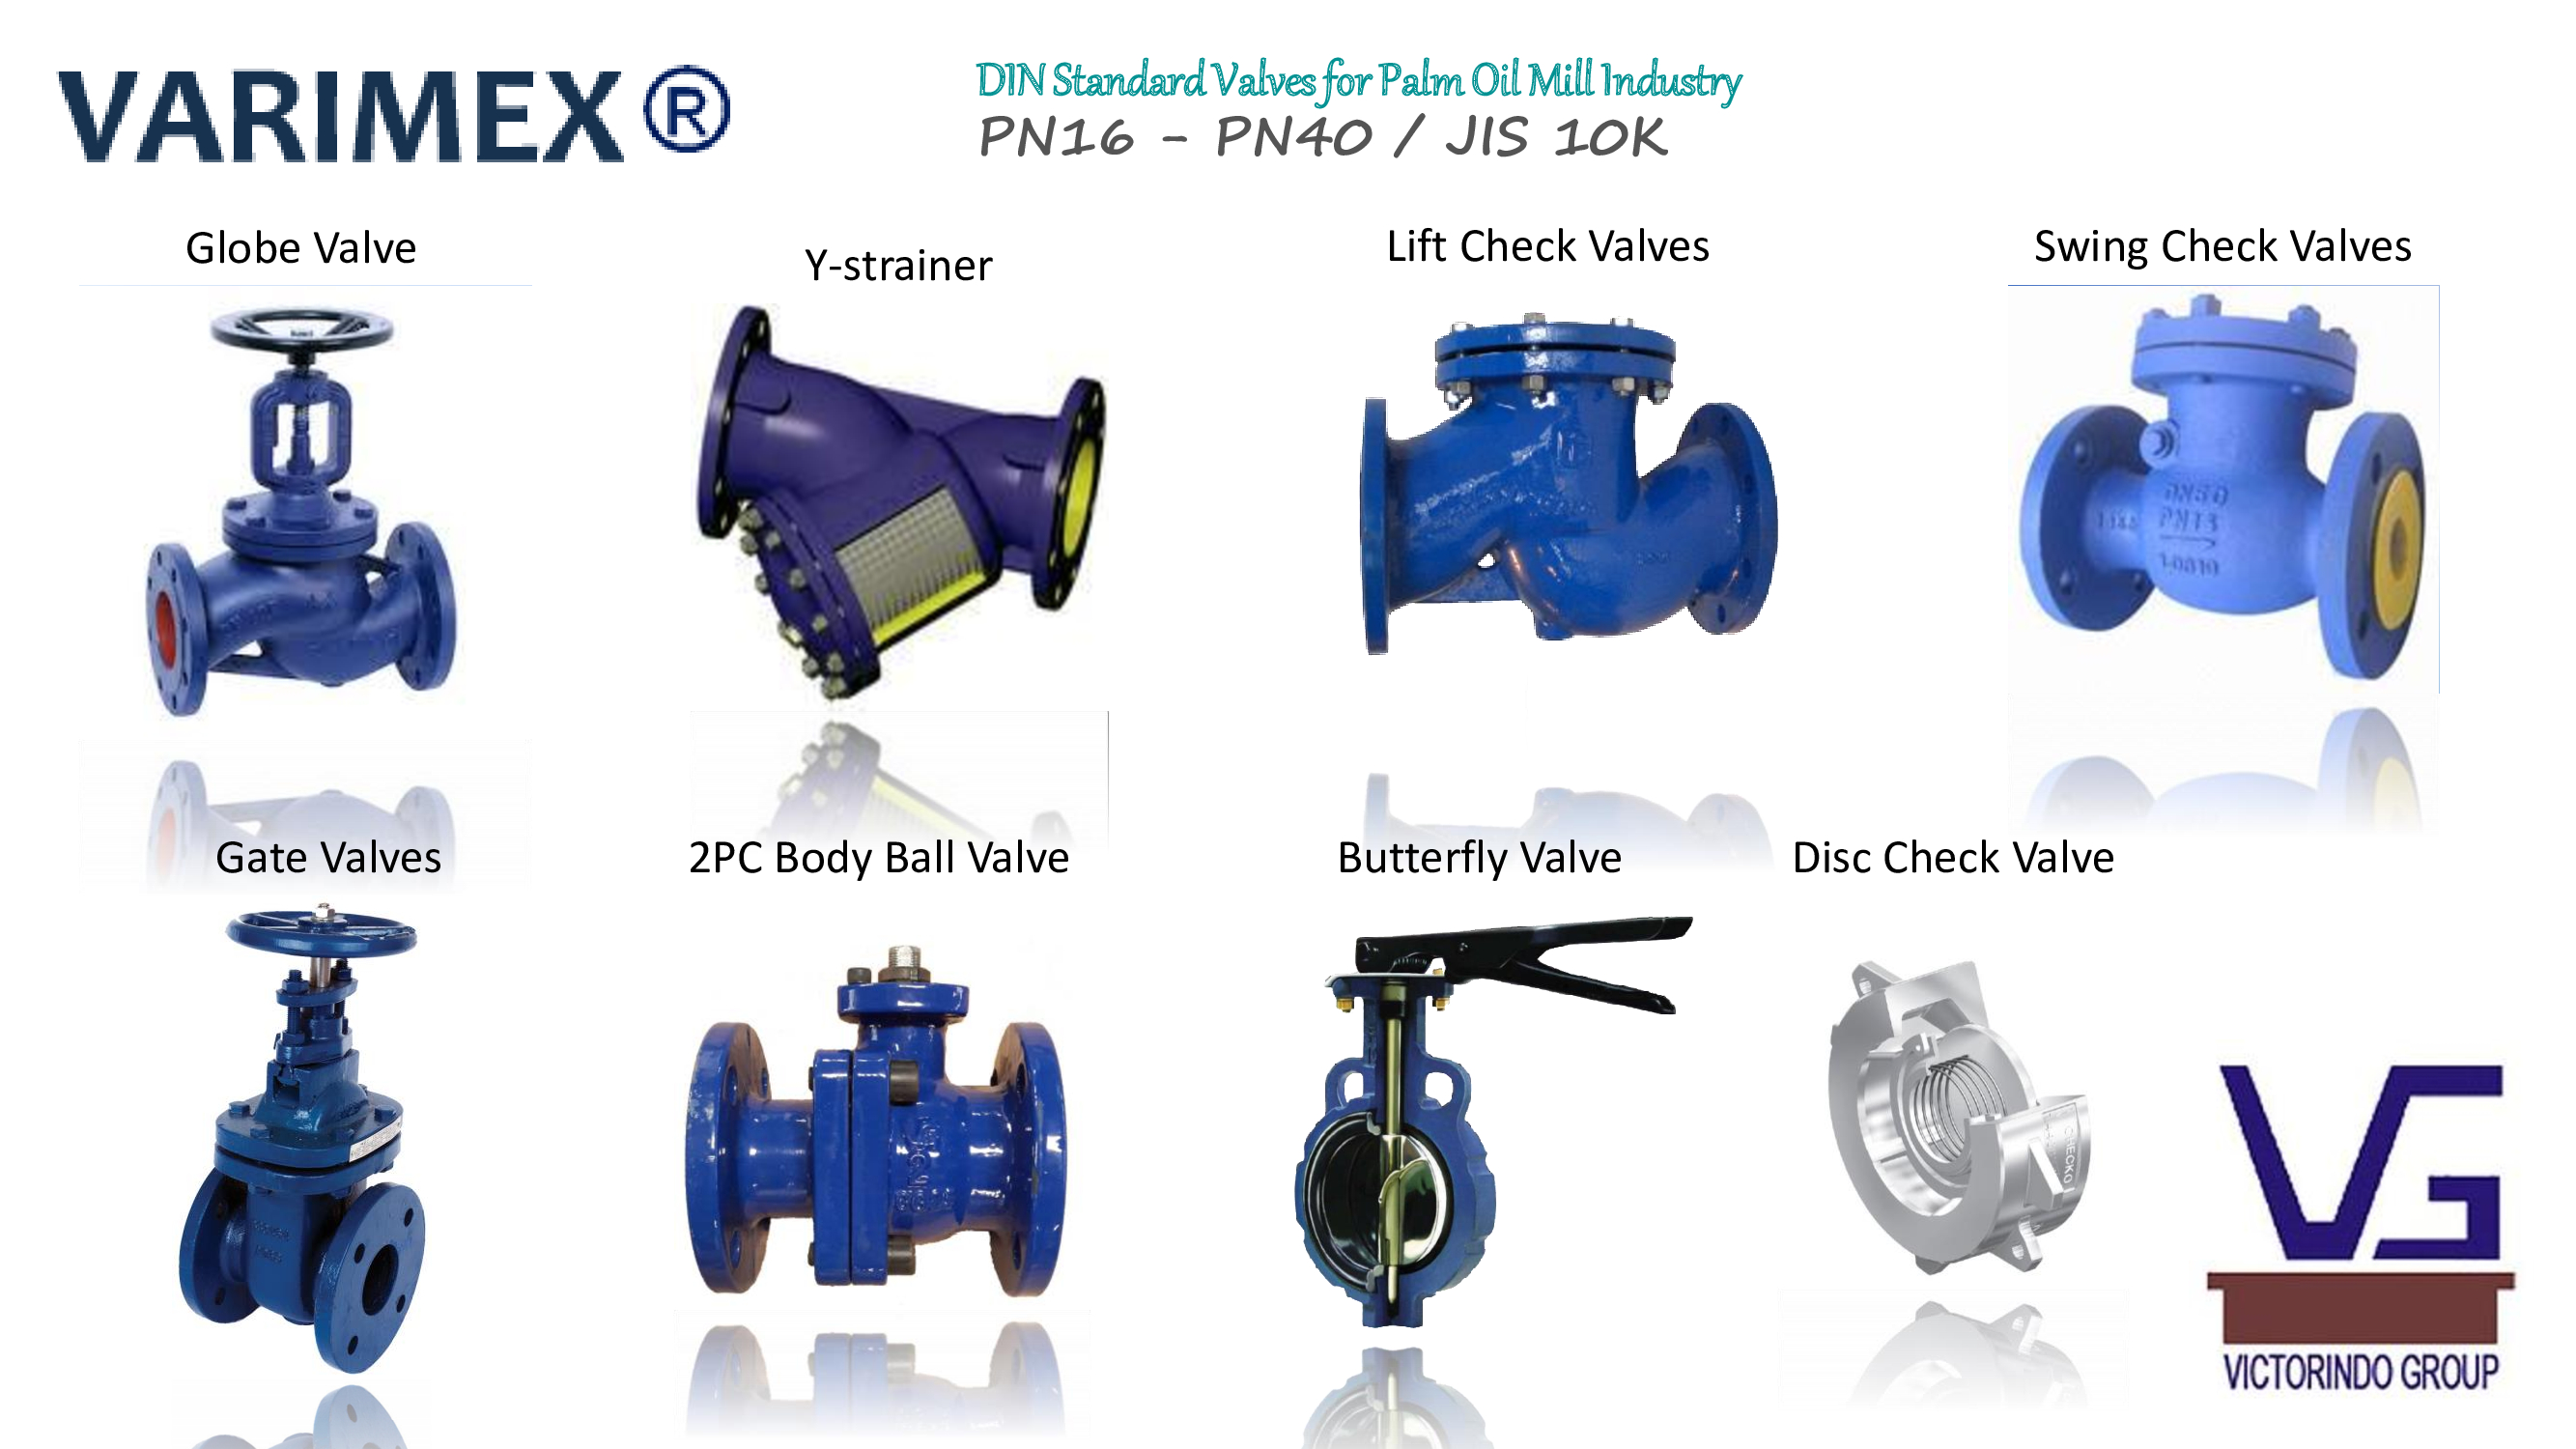 Varimex - Manual Valves for Palm Oil Industry